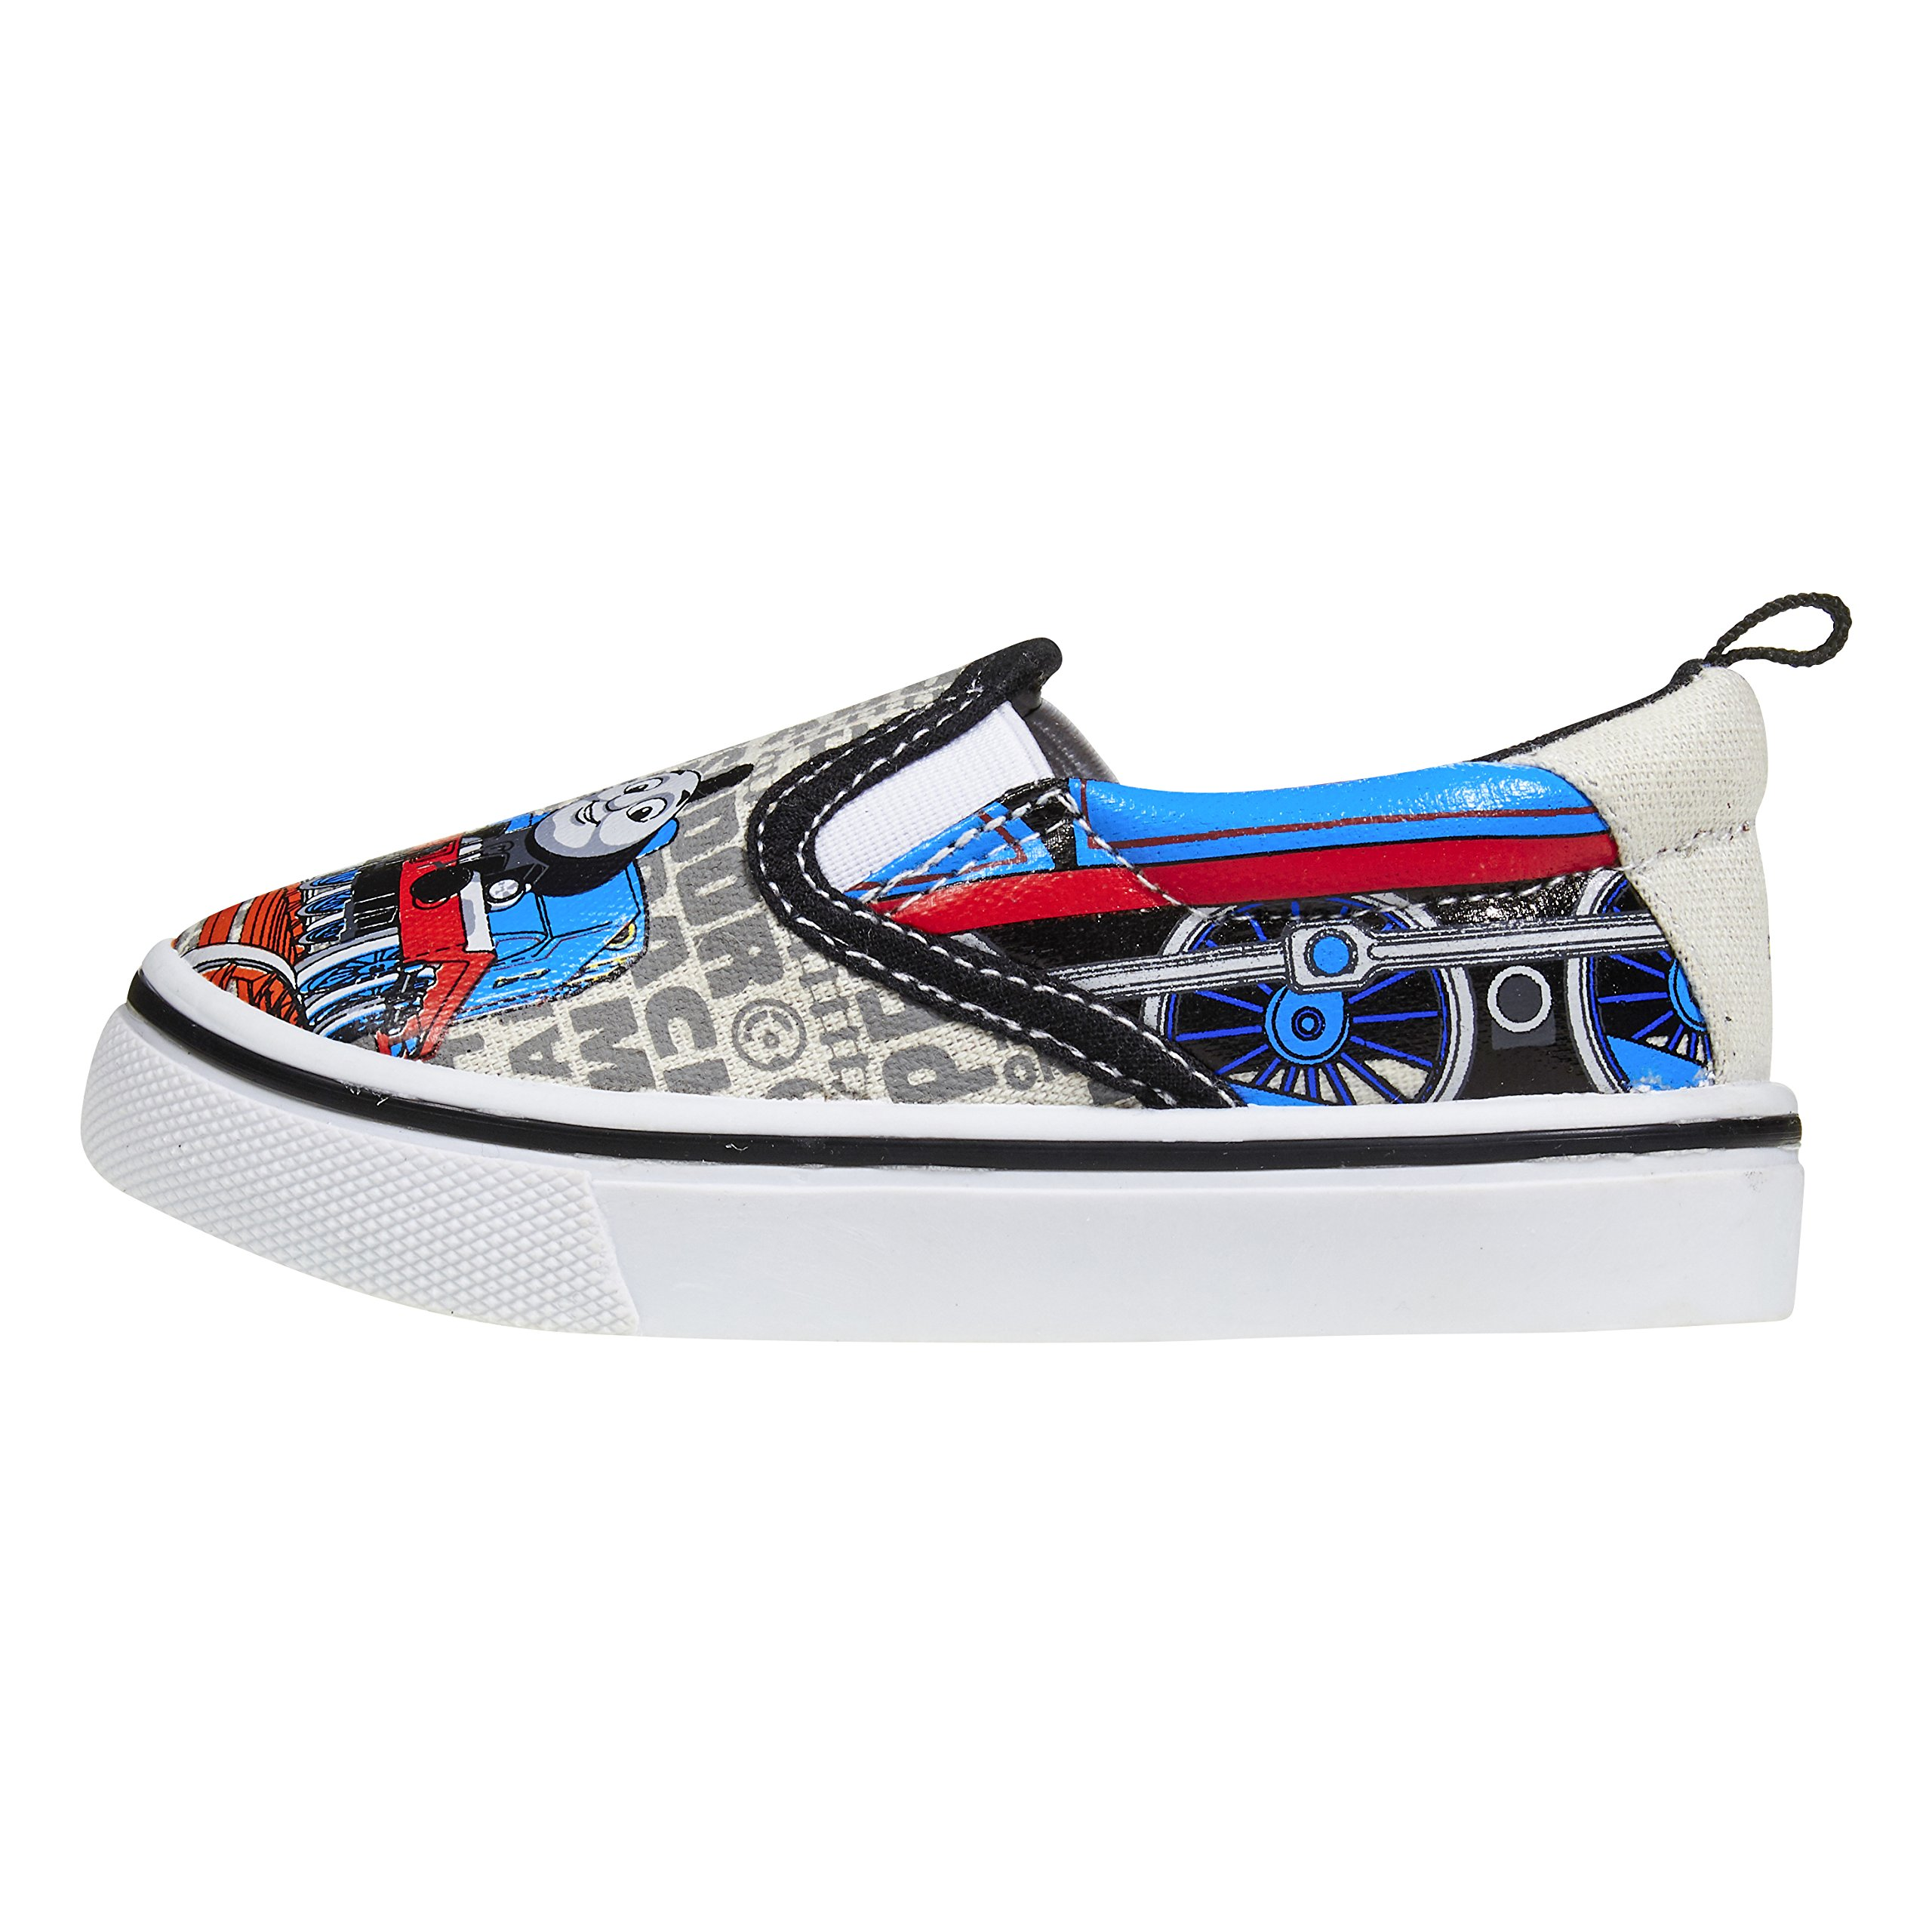 Thomas and Friends Toddler Boy Shoes; Slip-On Little Kids Character Shoes by Thomas & Friends (Image #2)